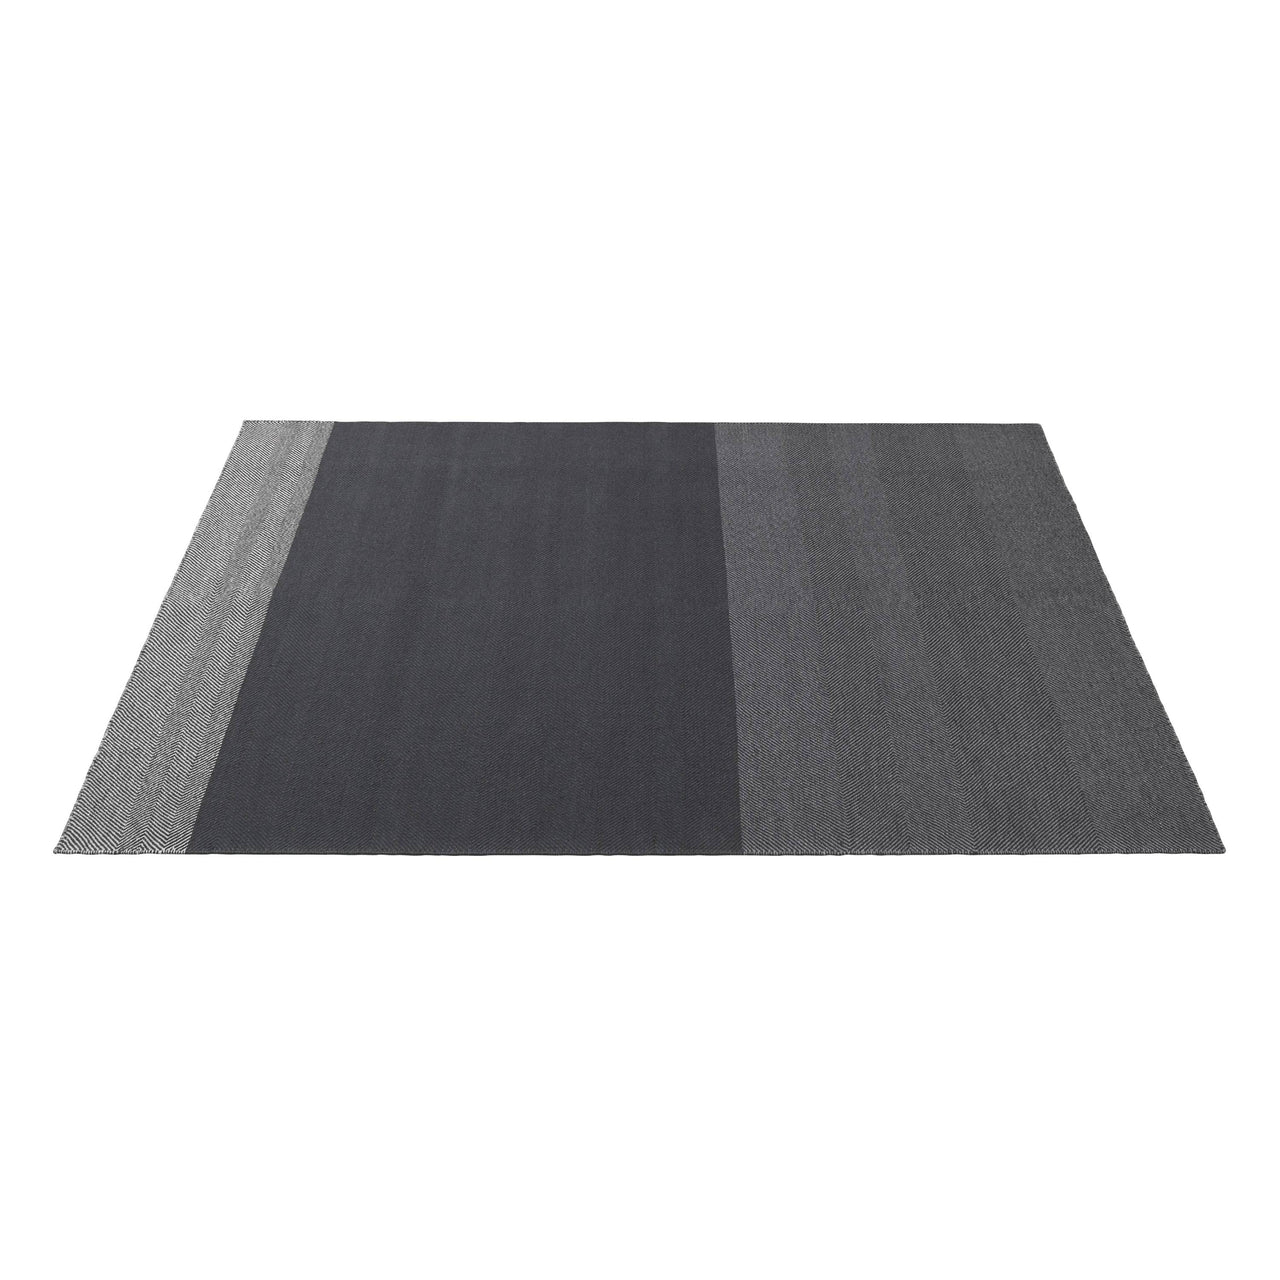 Varjo Rug: Large + Dark Grey